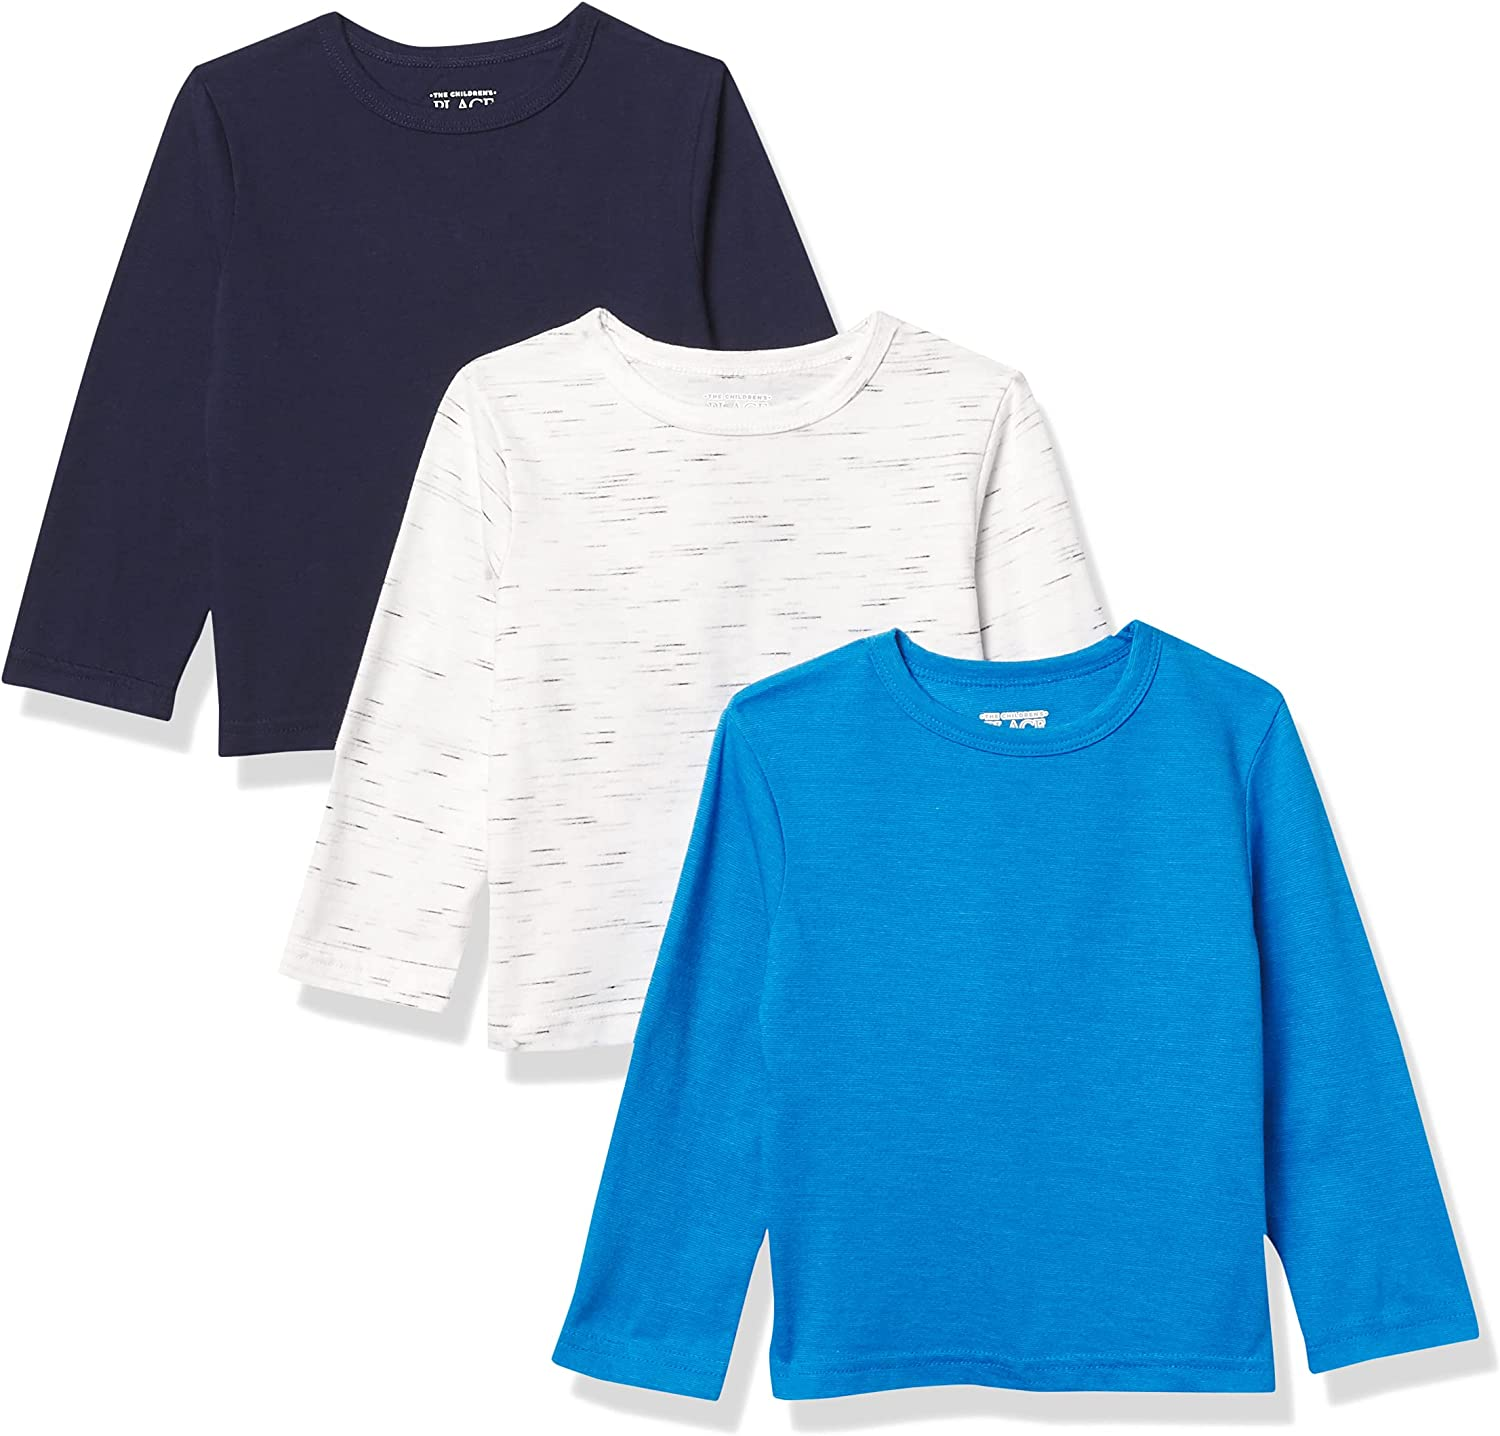 The Children's Place and Toddler Boy Long Sleeve Marled Top 3-Pack